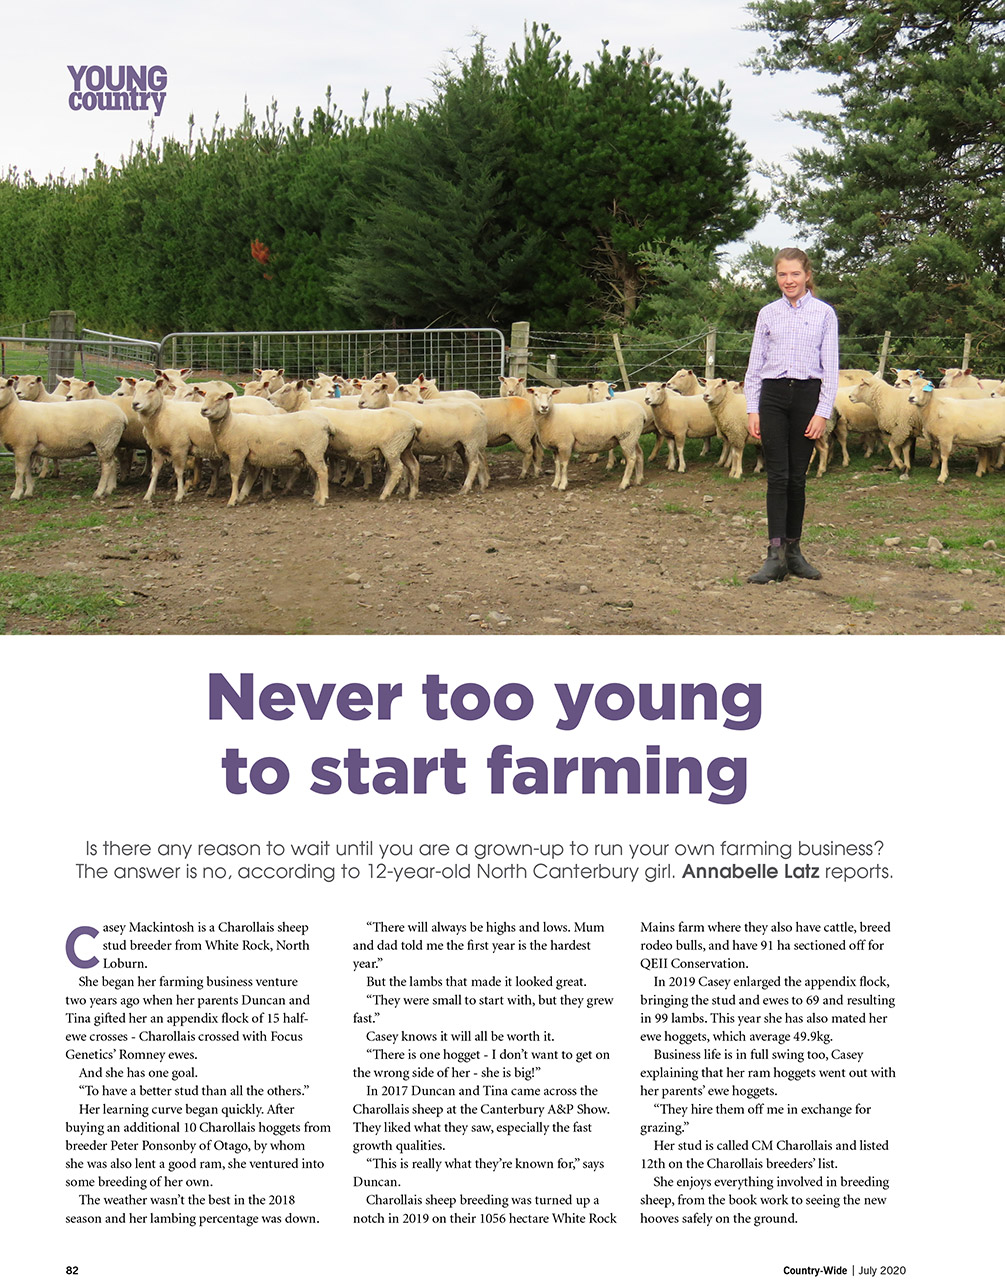 Breeding charollais sheep, never too young | With Belles On